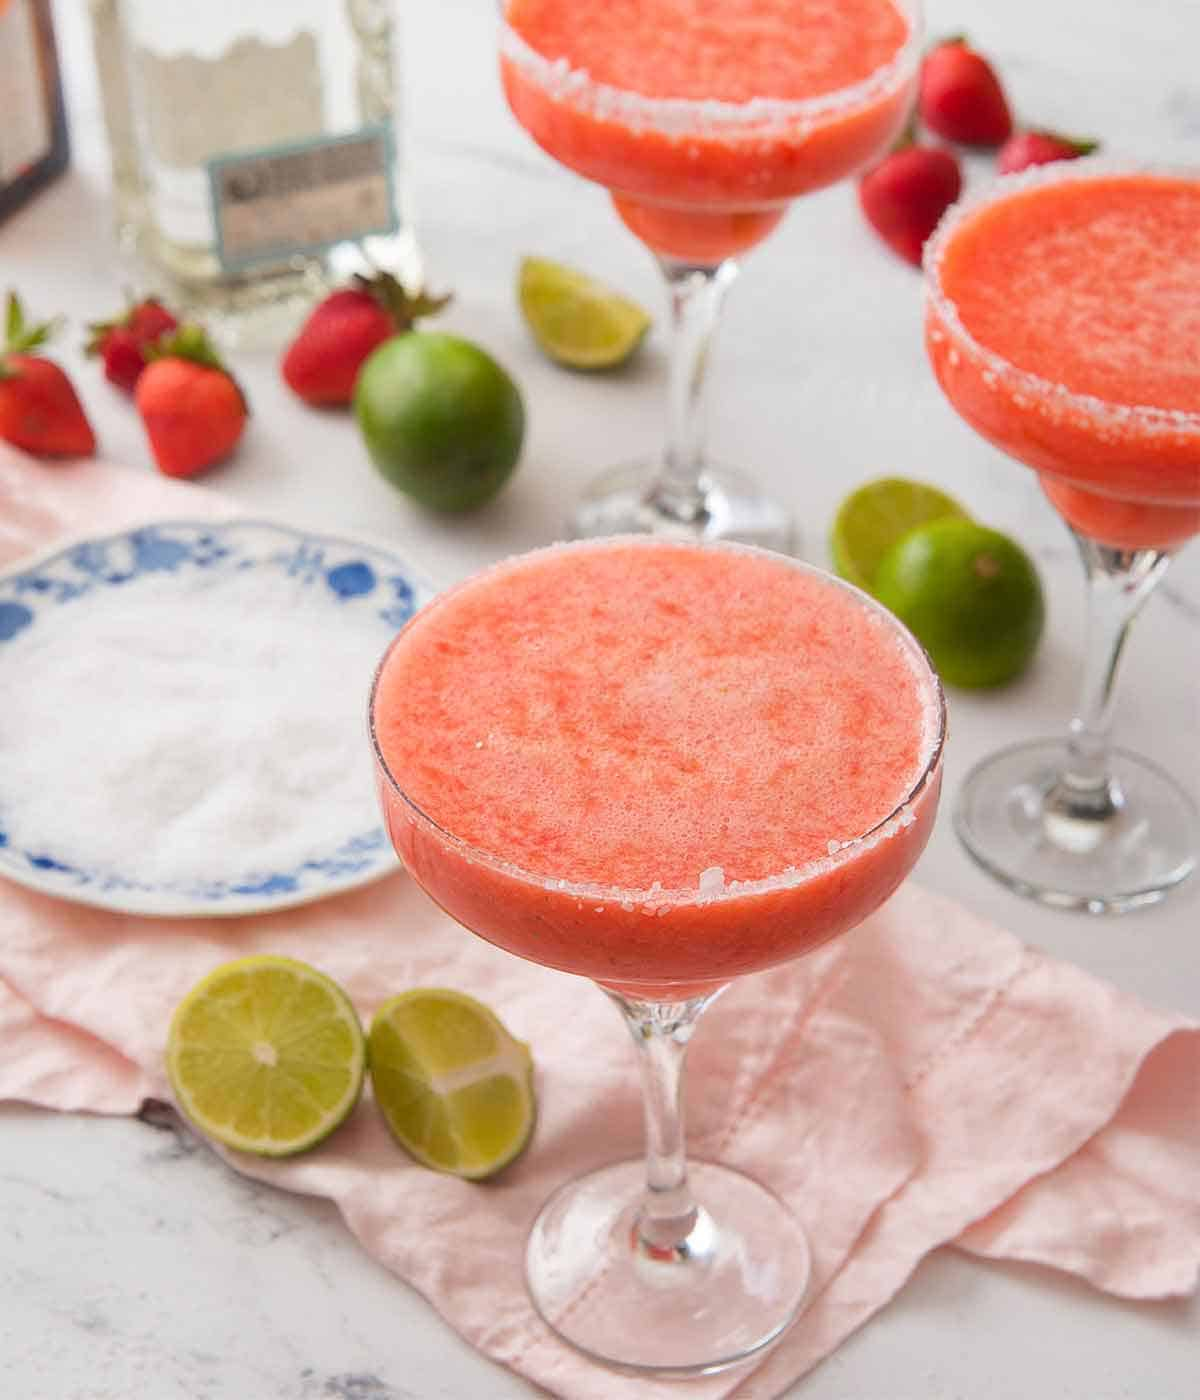 A set of three cocktail glasses with strawberry margarita beside a plate of salt, cut limes, and strawberries.